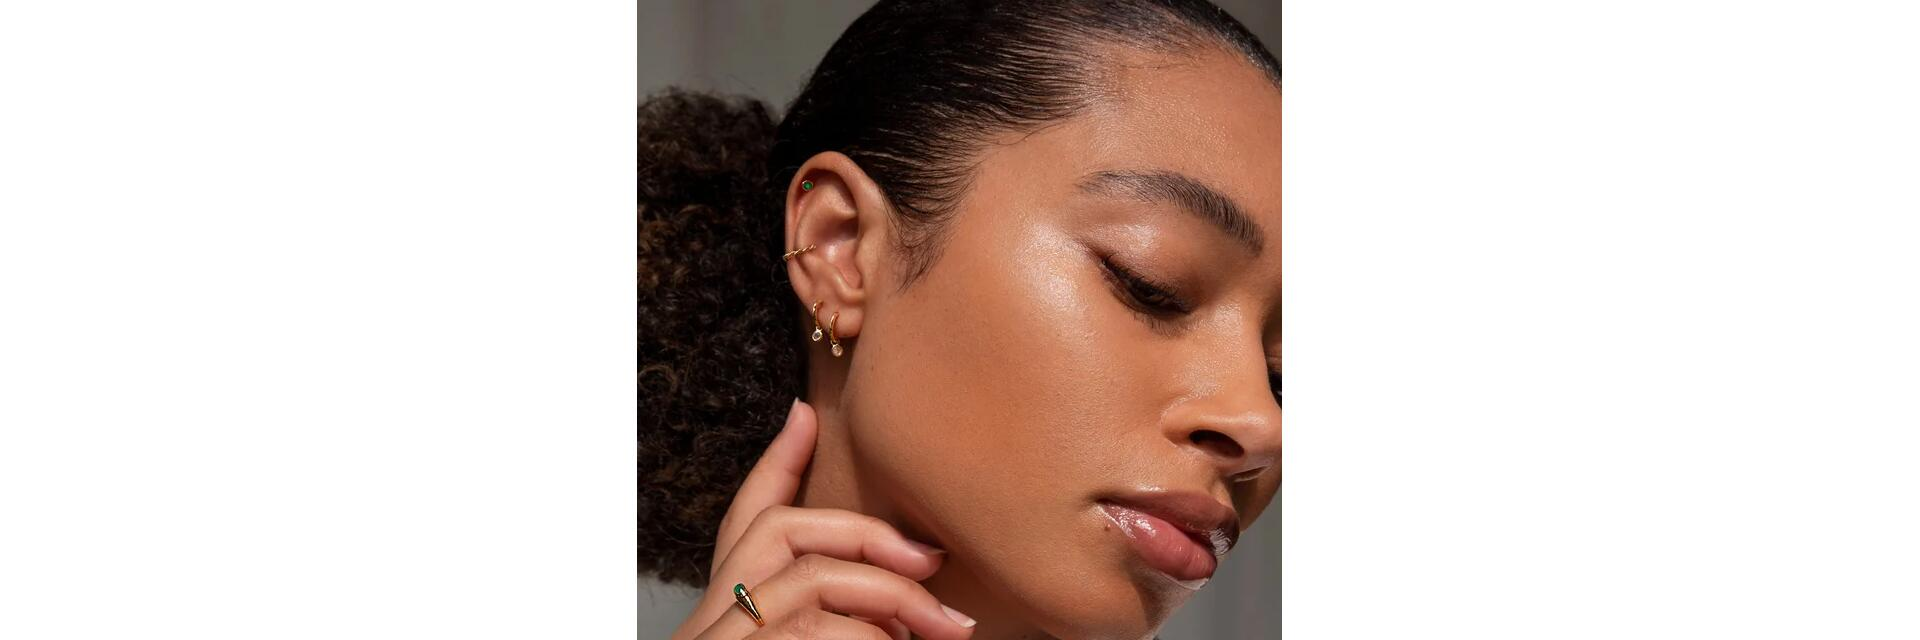 once your piercing is healed, experiment with delicate gemstone jewellery